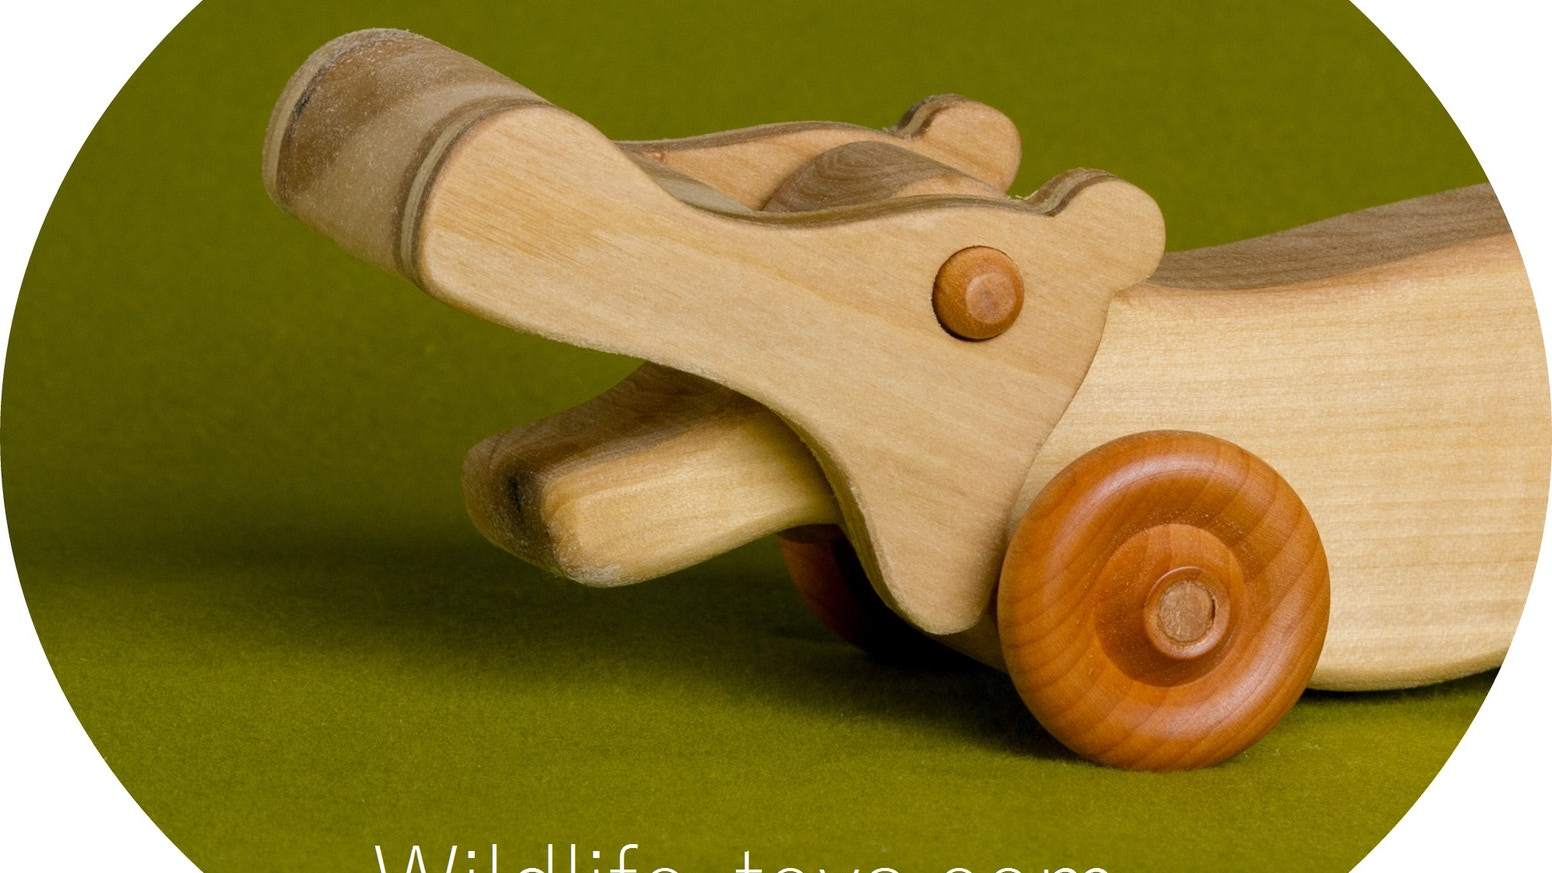 wildlife toys-animated hardwood toys since 1978david